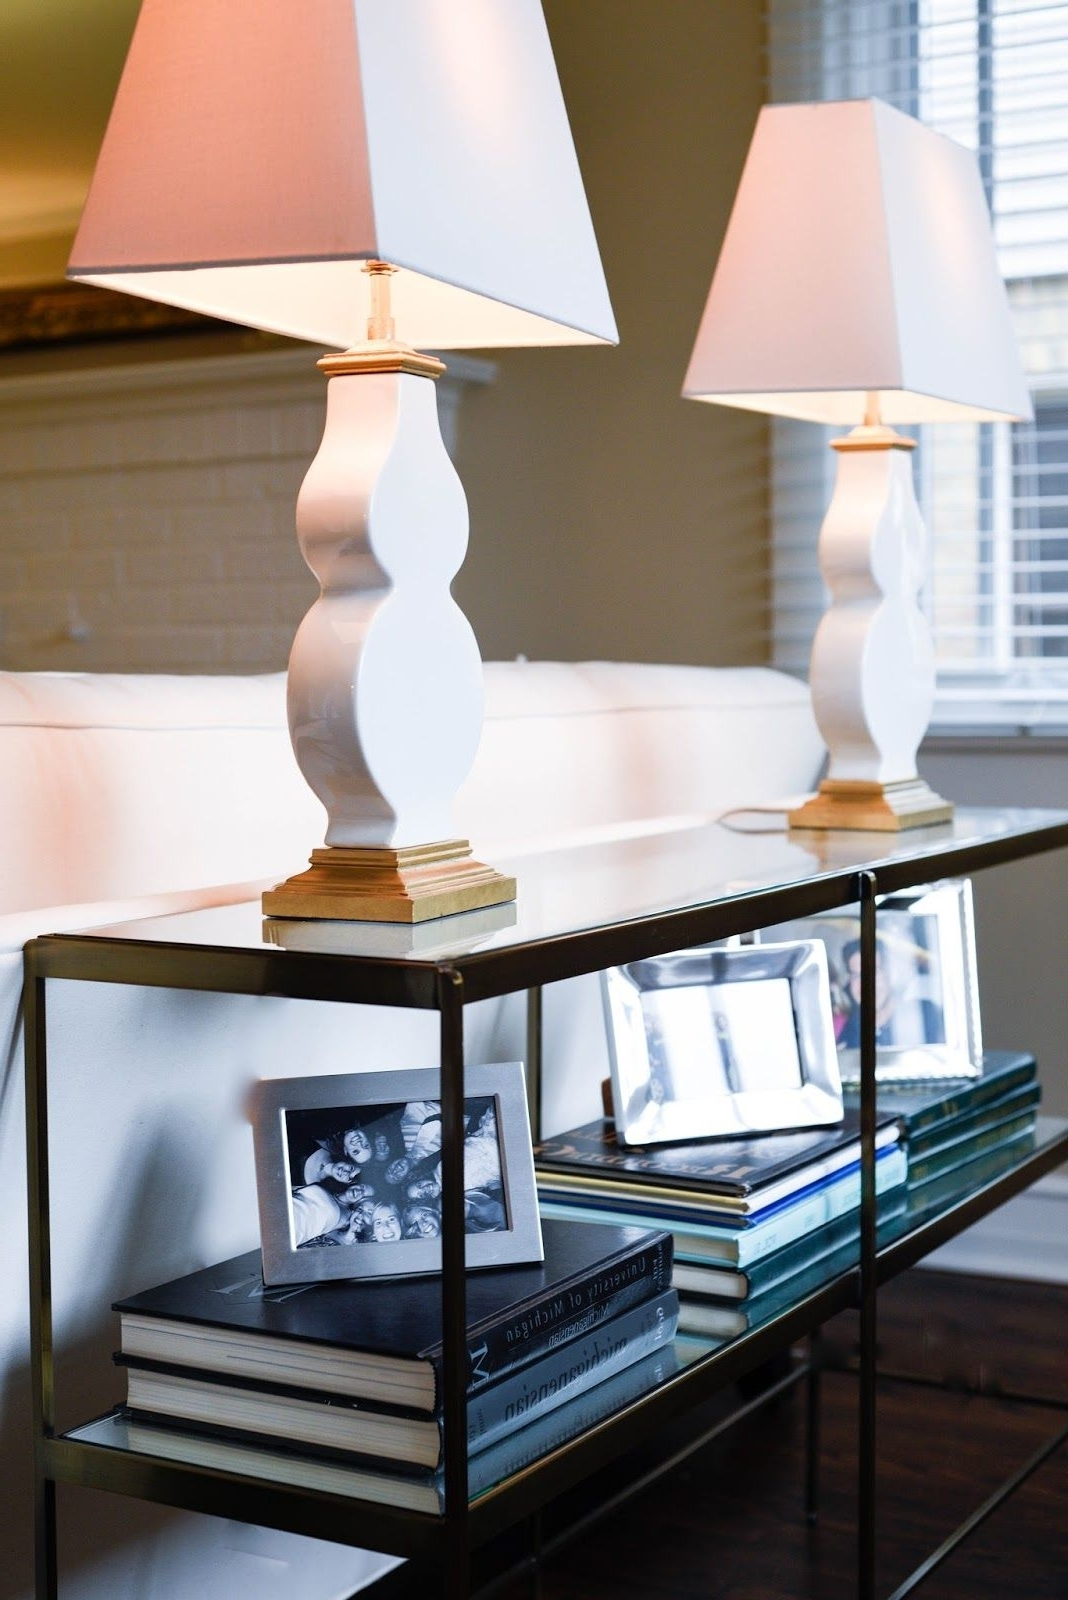 Transitional Pertaining To Favorite Transitional Living Room Table Lamps (View 20 of 20)